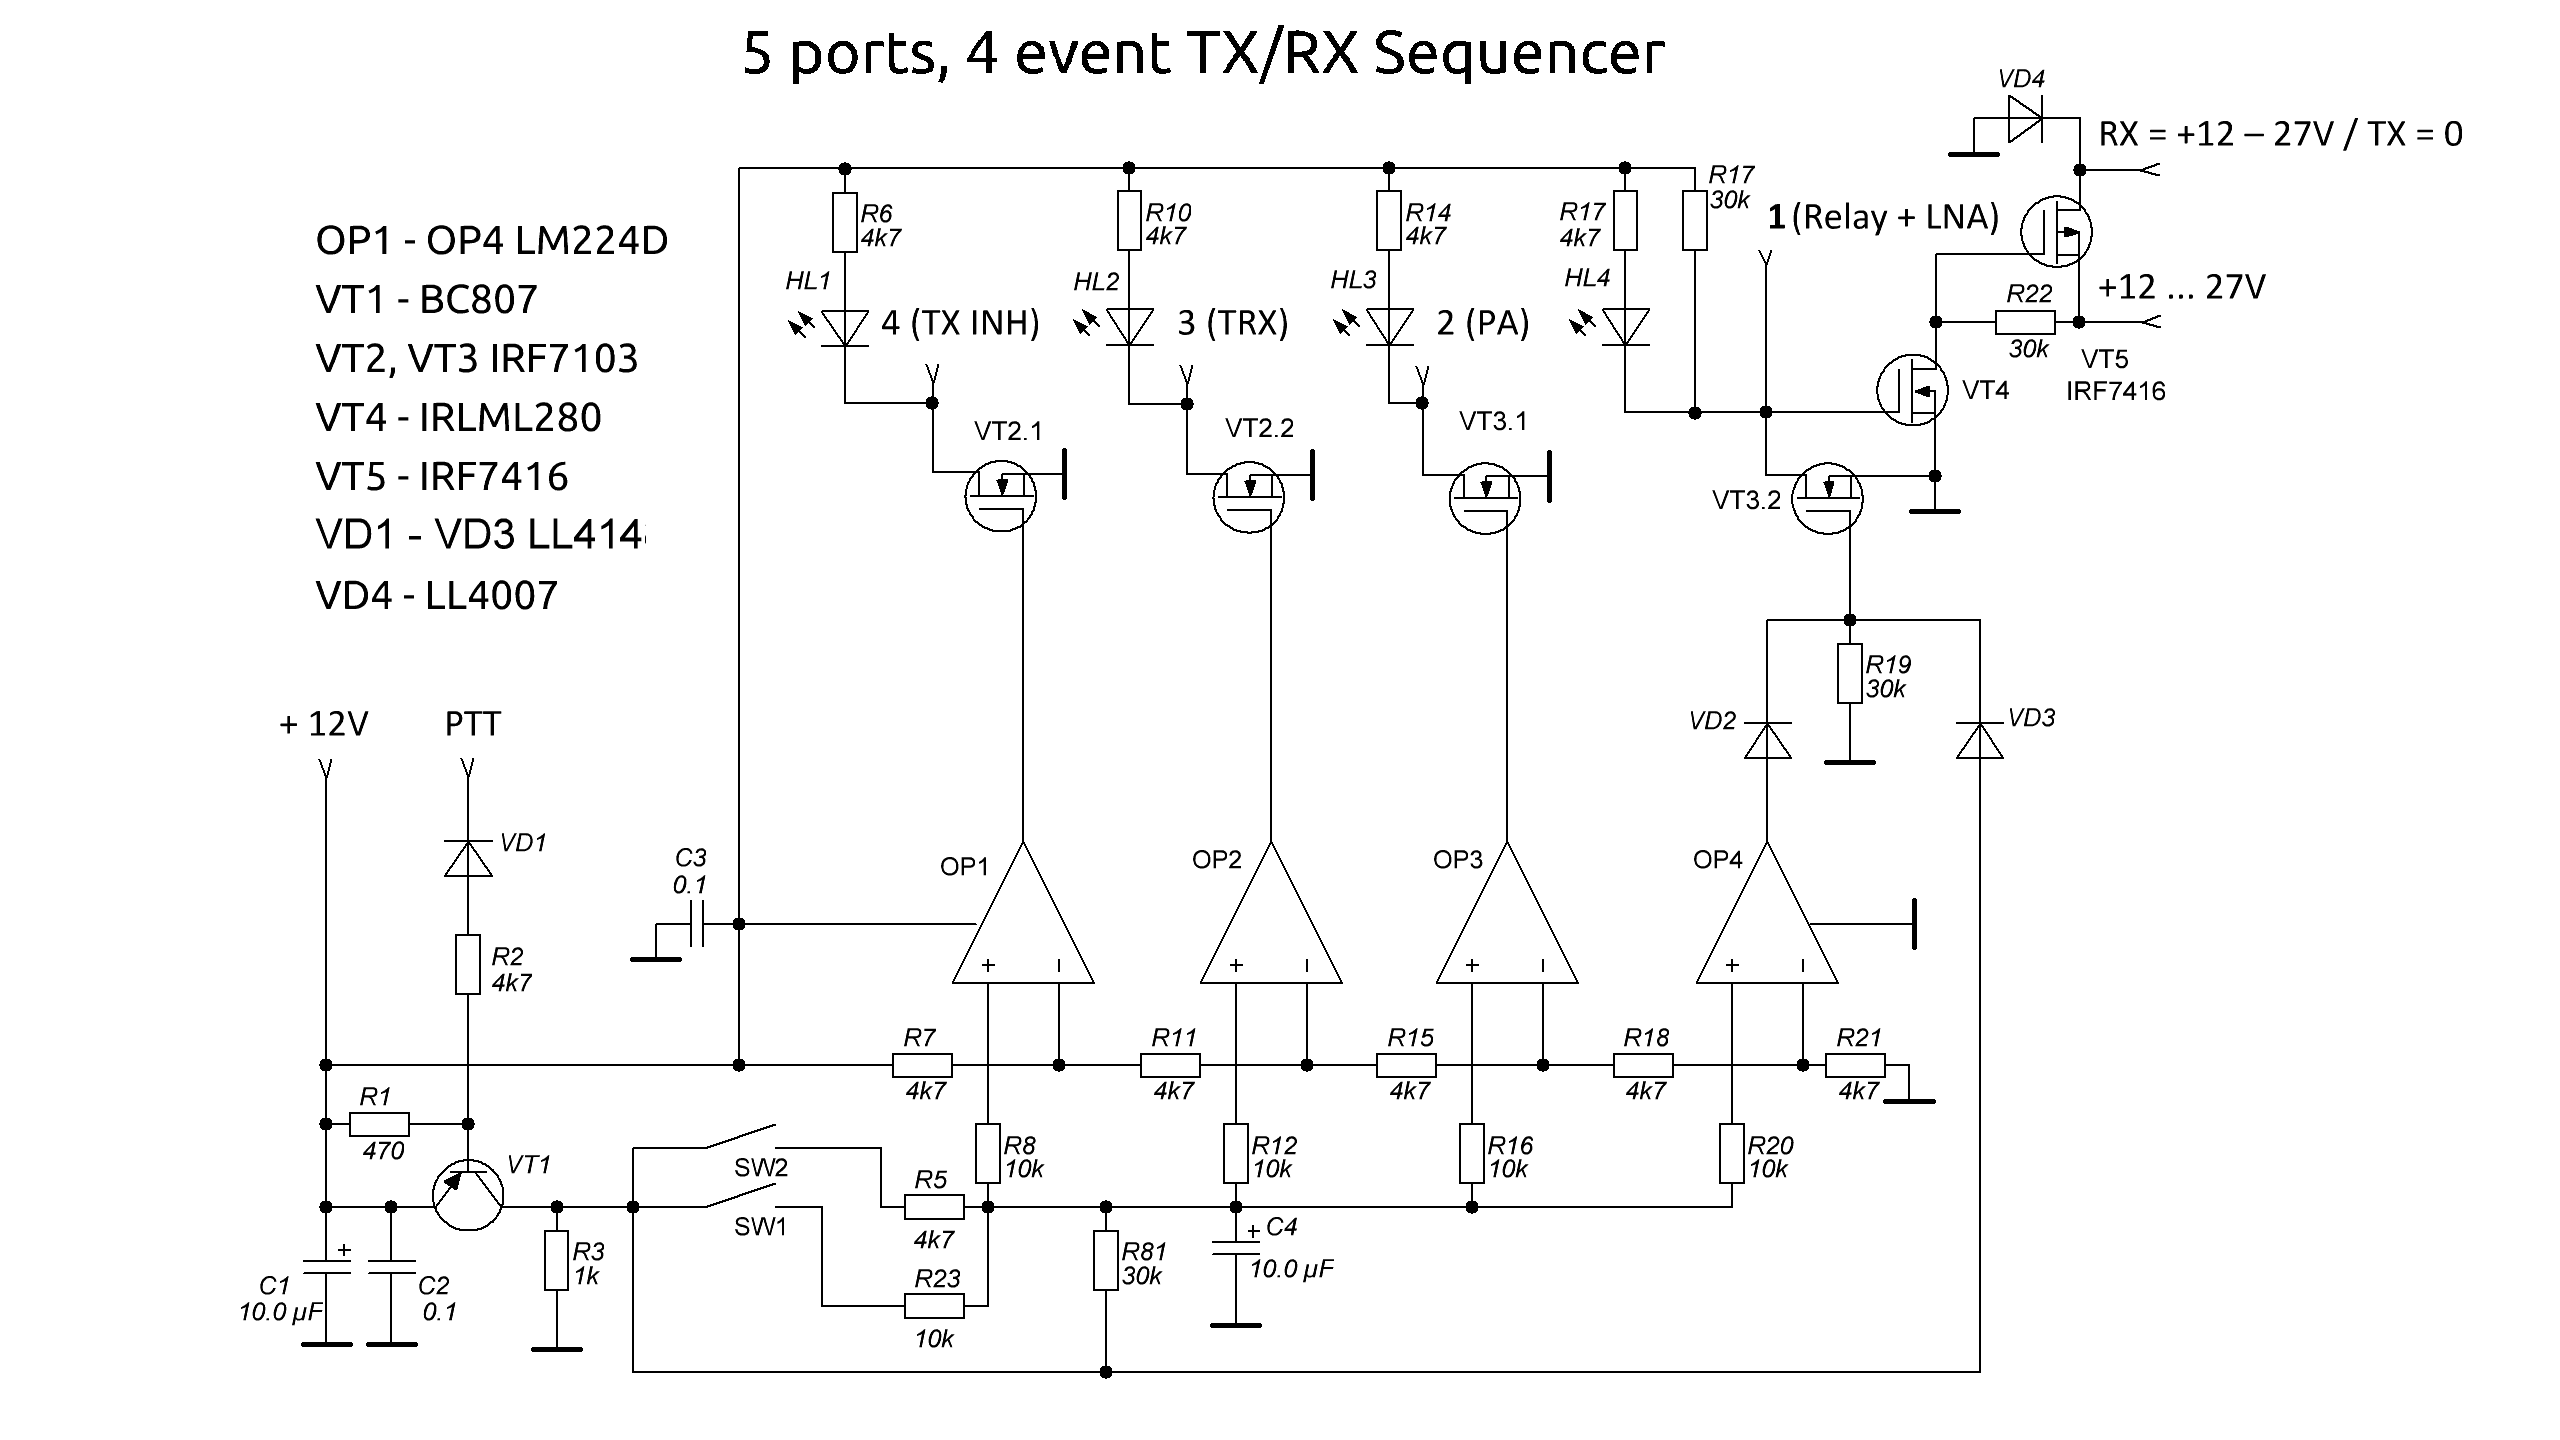 Sequencer Pcb For Lna Pa Rf Relays Transceiver Vhf Design Wiring Diagram Schematic Circuit